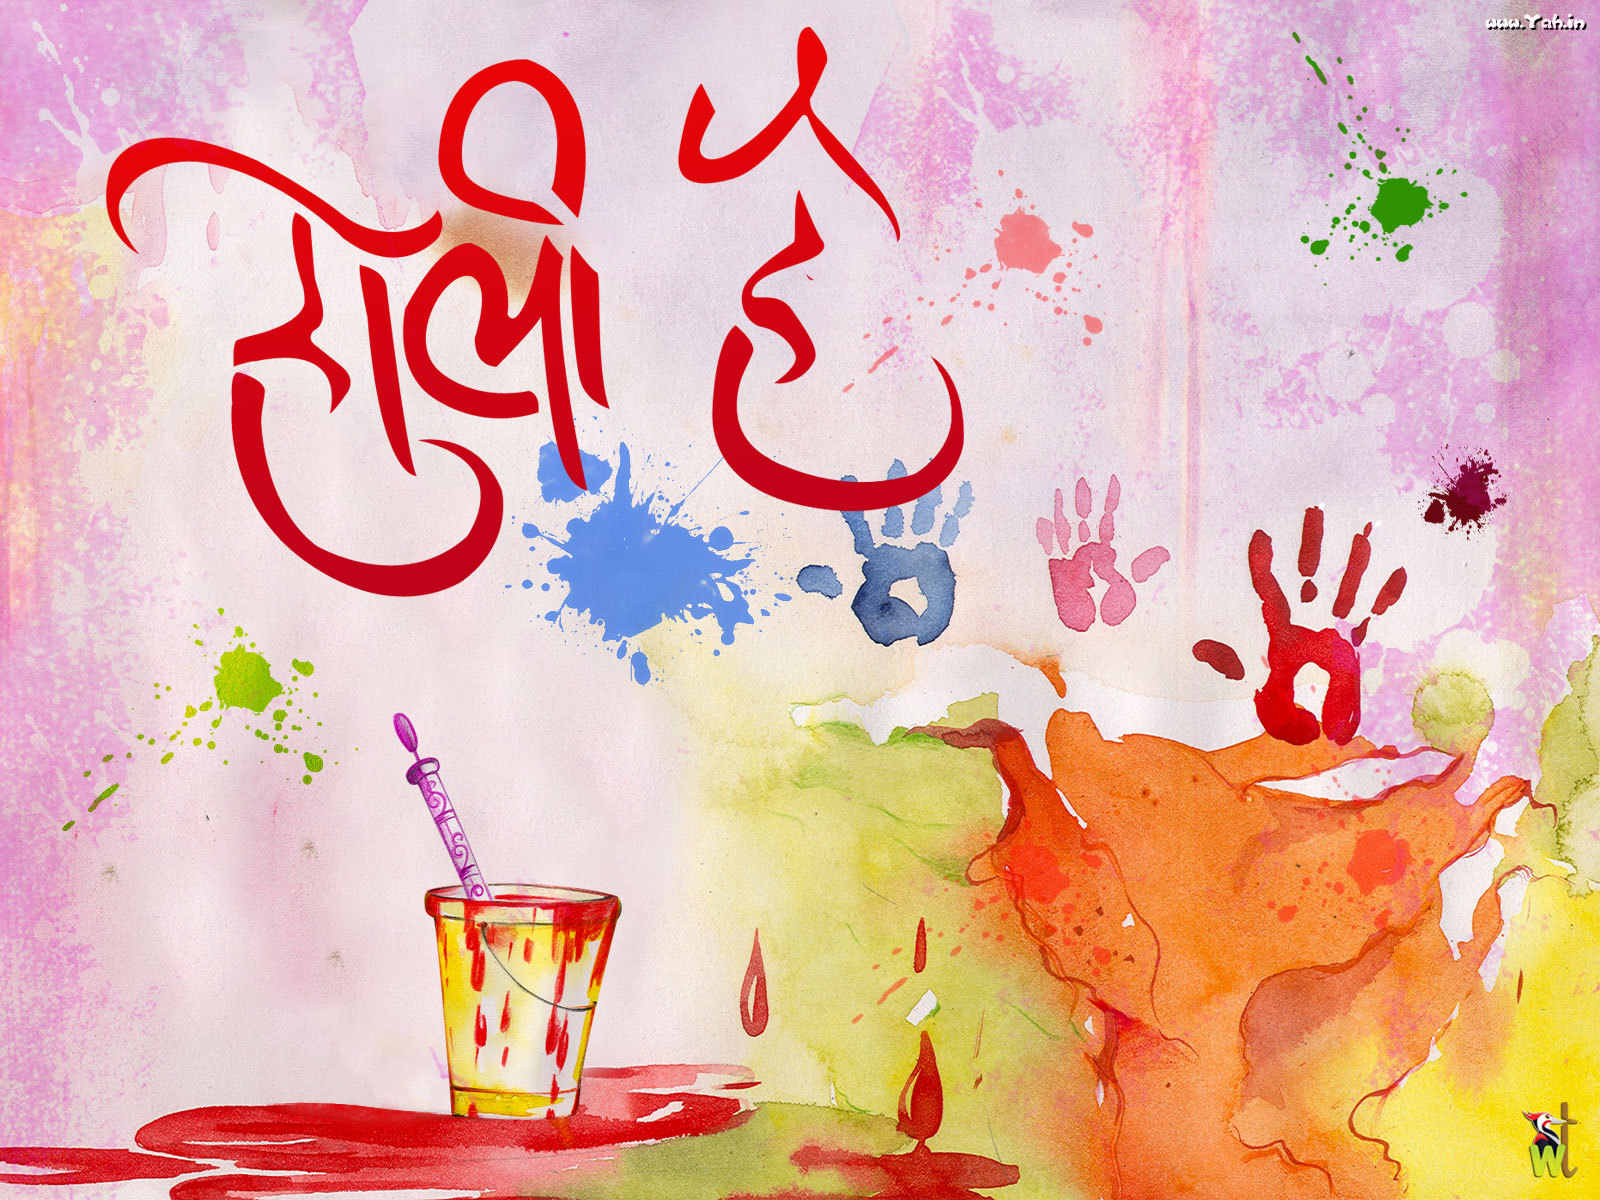 Love Wallpaper For Holi : Punjab Trip: Holi Festival 2013 Wallpapers